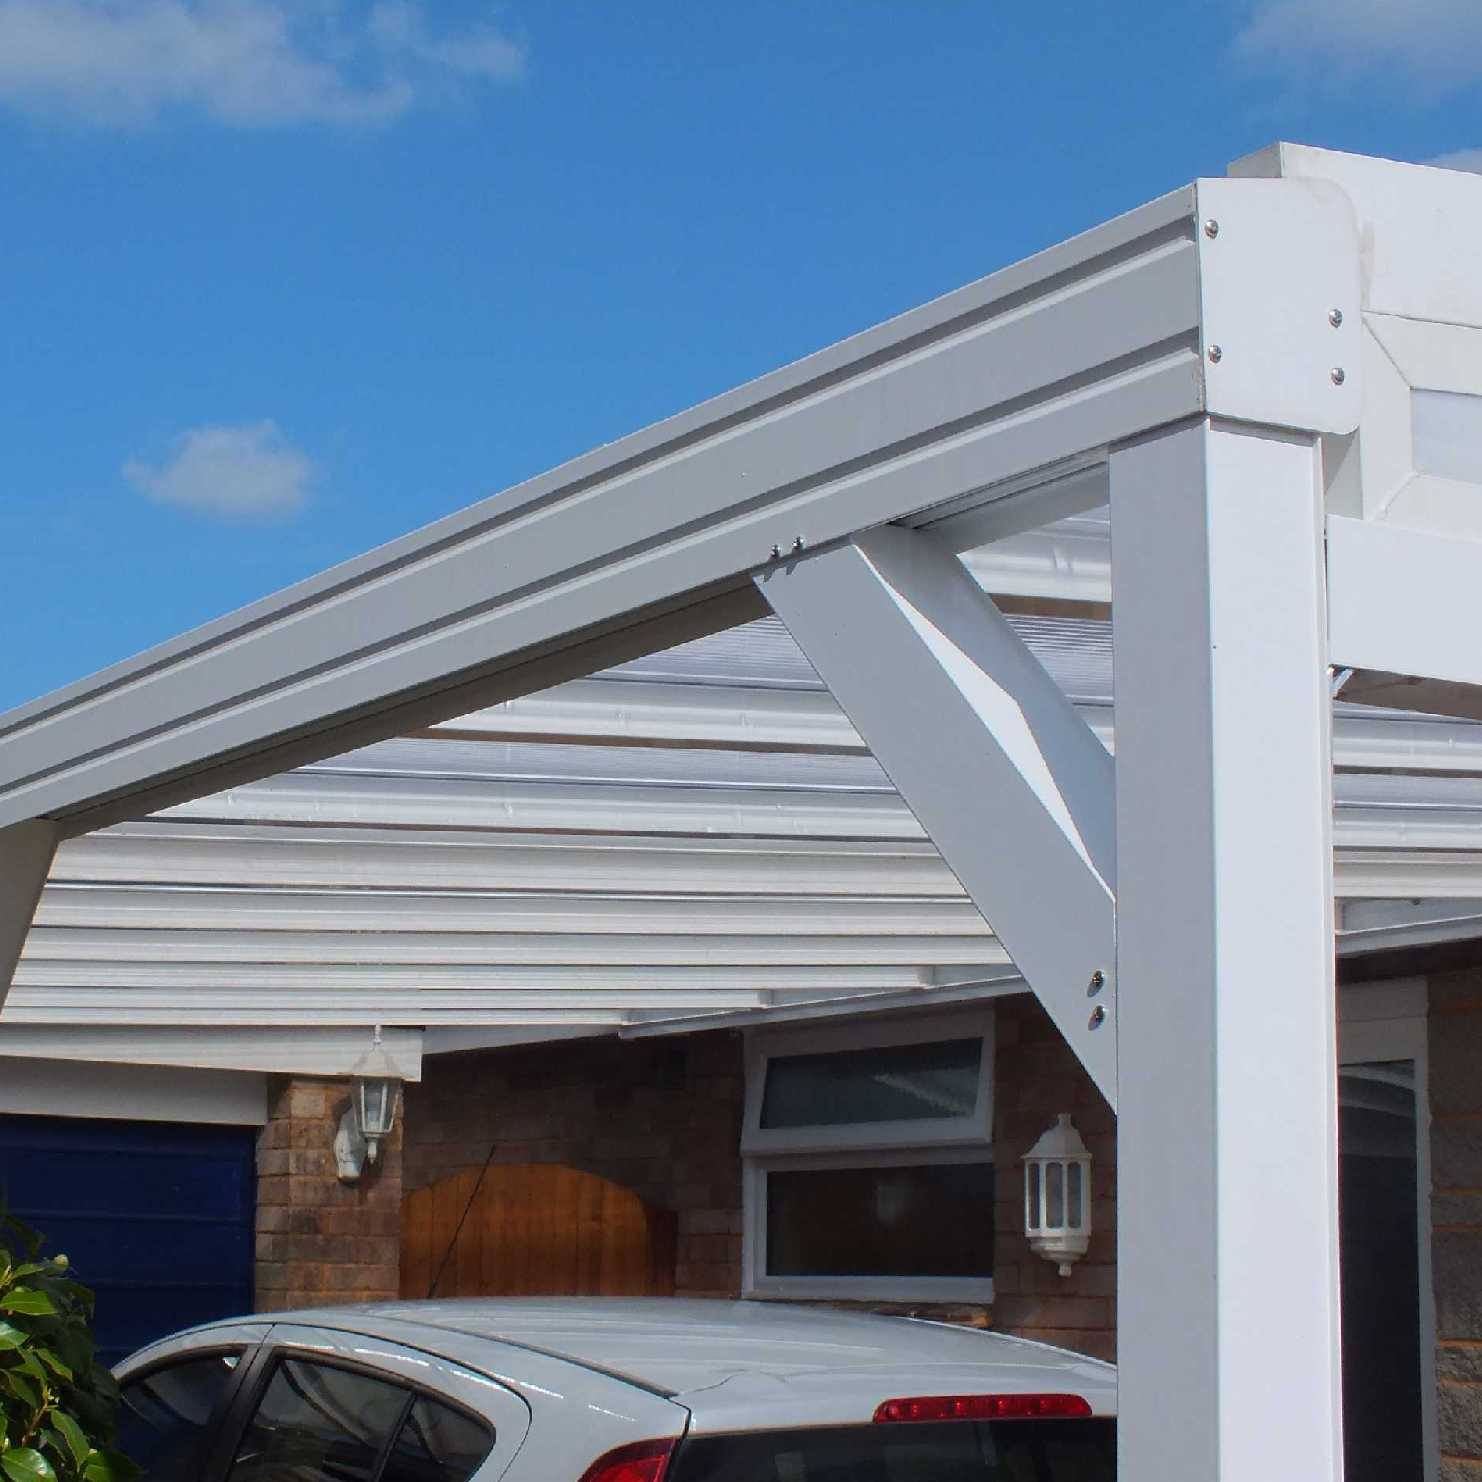 Great deals on Omega Smart Lean-To Canopy with 16mm Polycarbonate Glazing - 10.6m (W) x 1.5m (P), (5) Supporting Posts